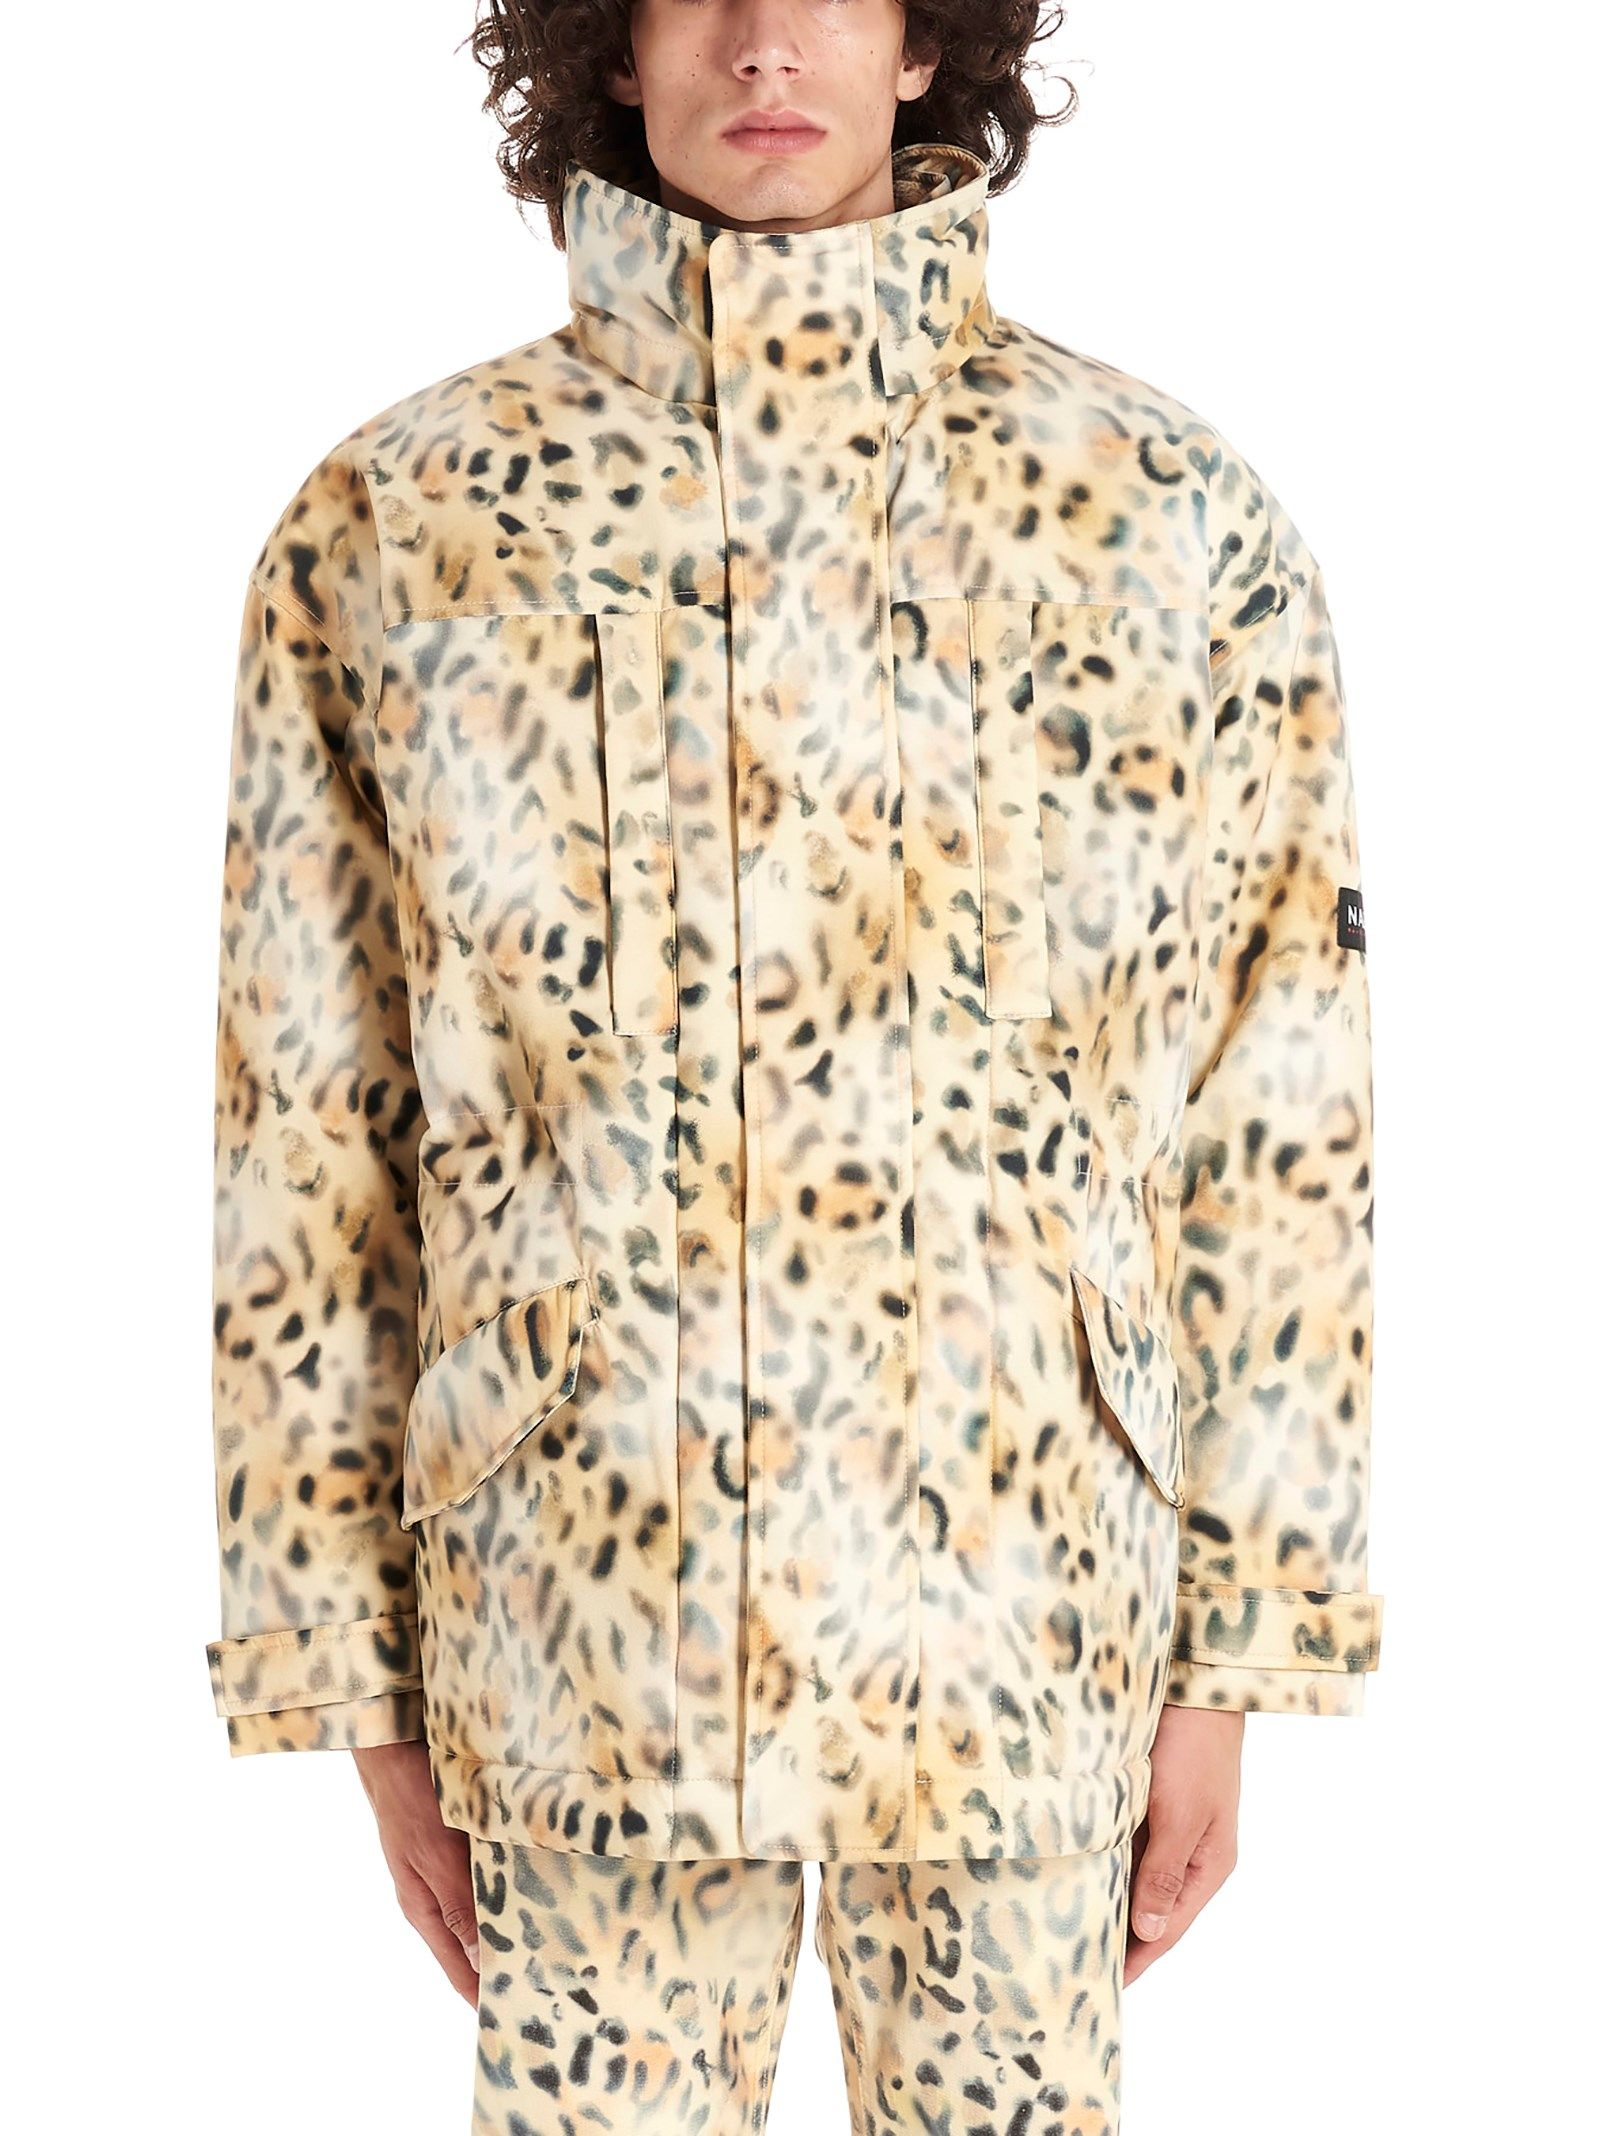 Napa By Martine Rose BEIGE POLYESTER OUTERWEAR JACKET